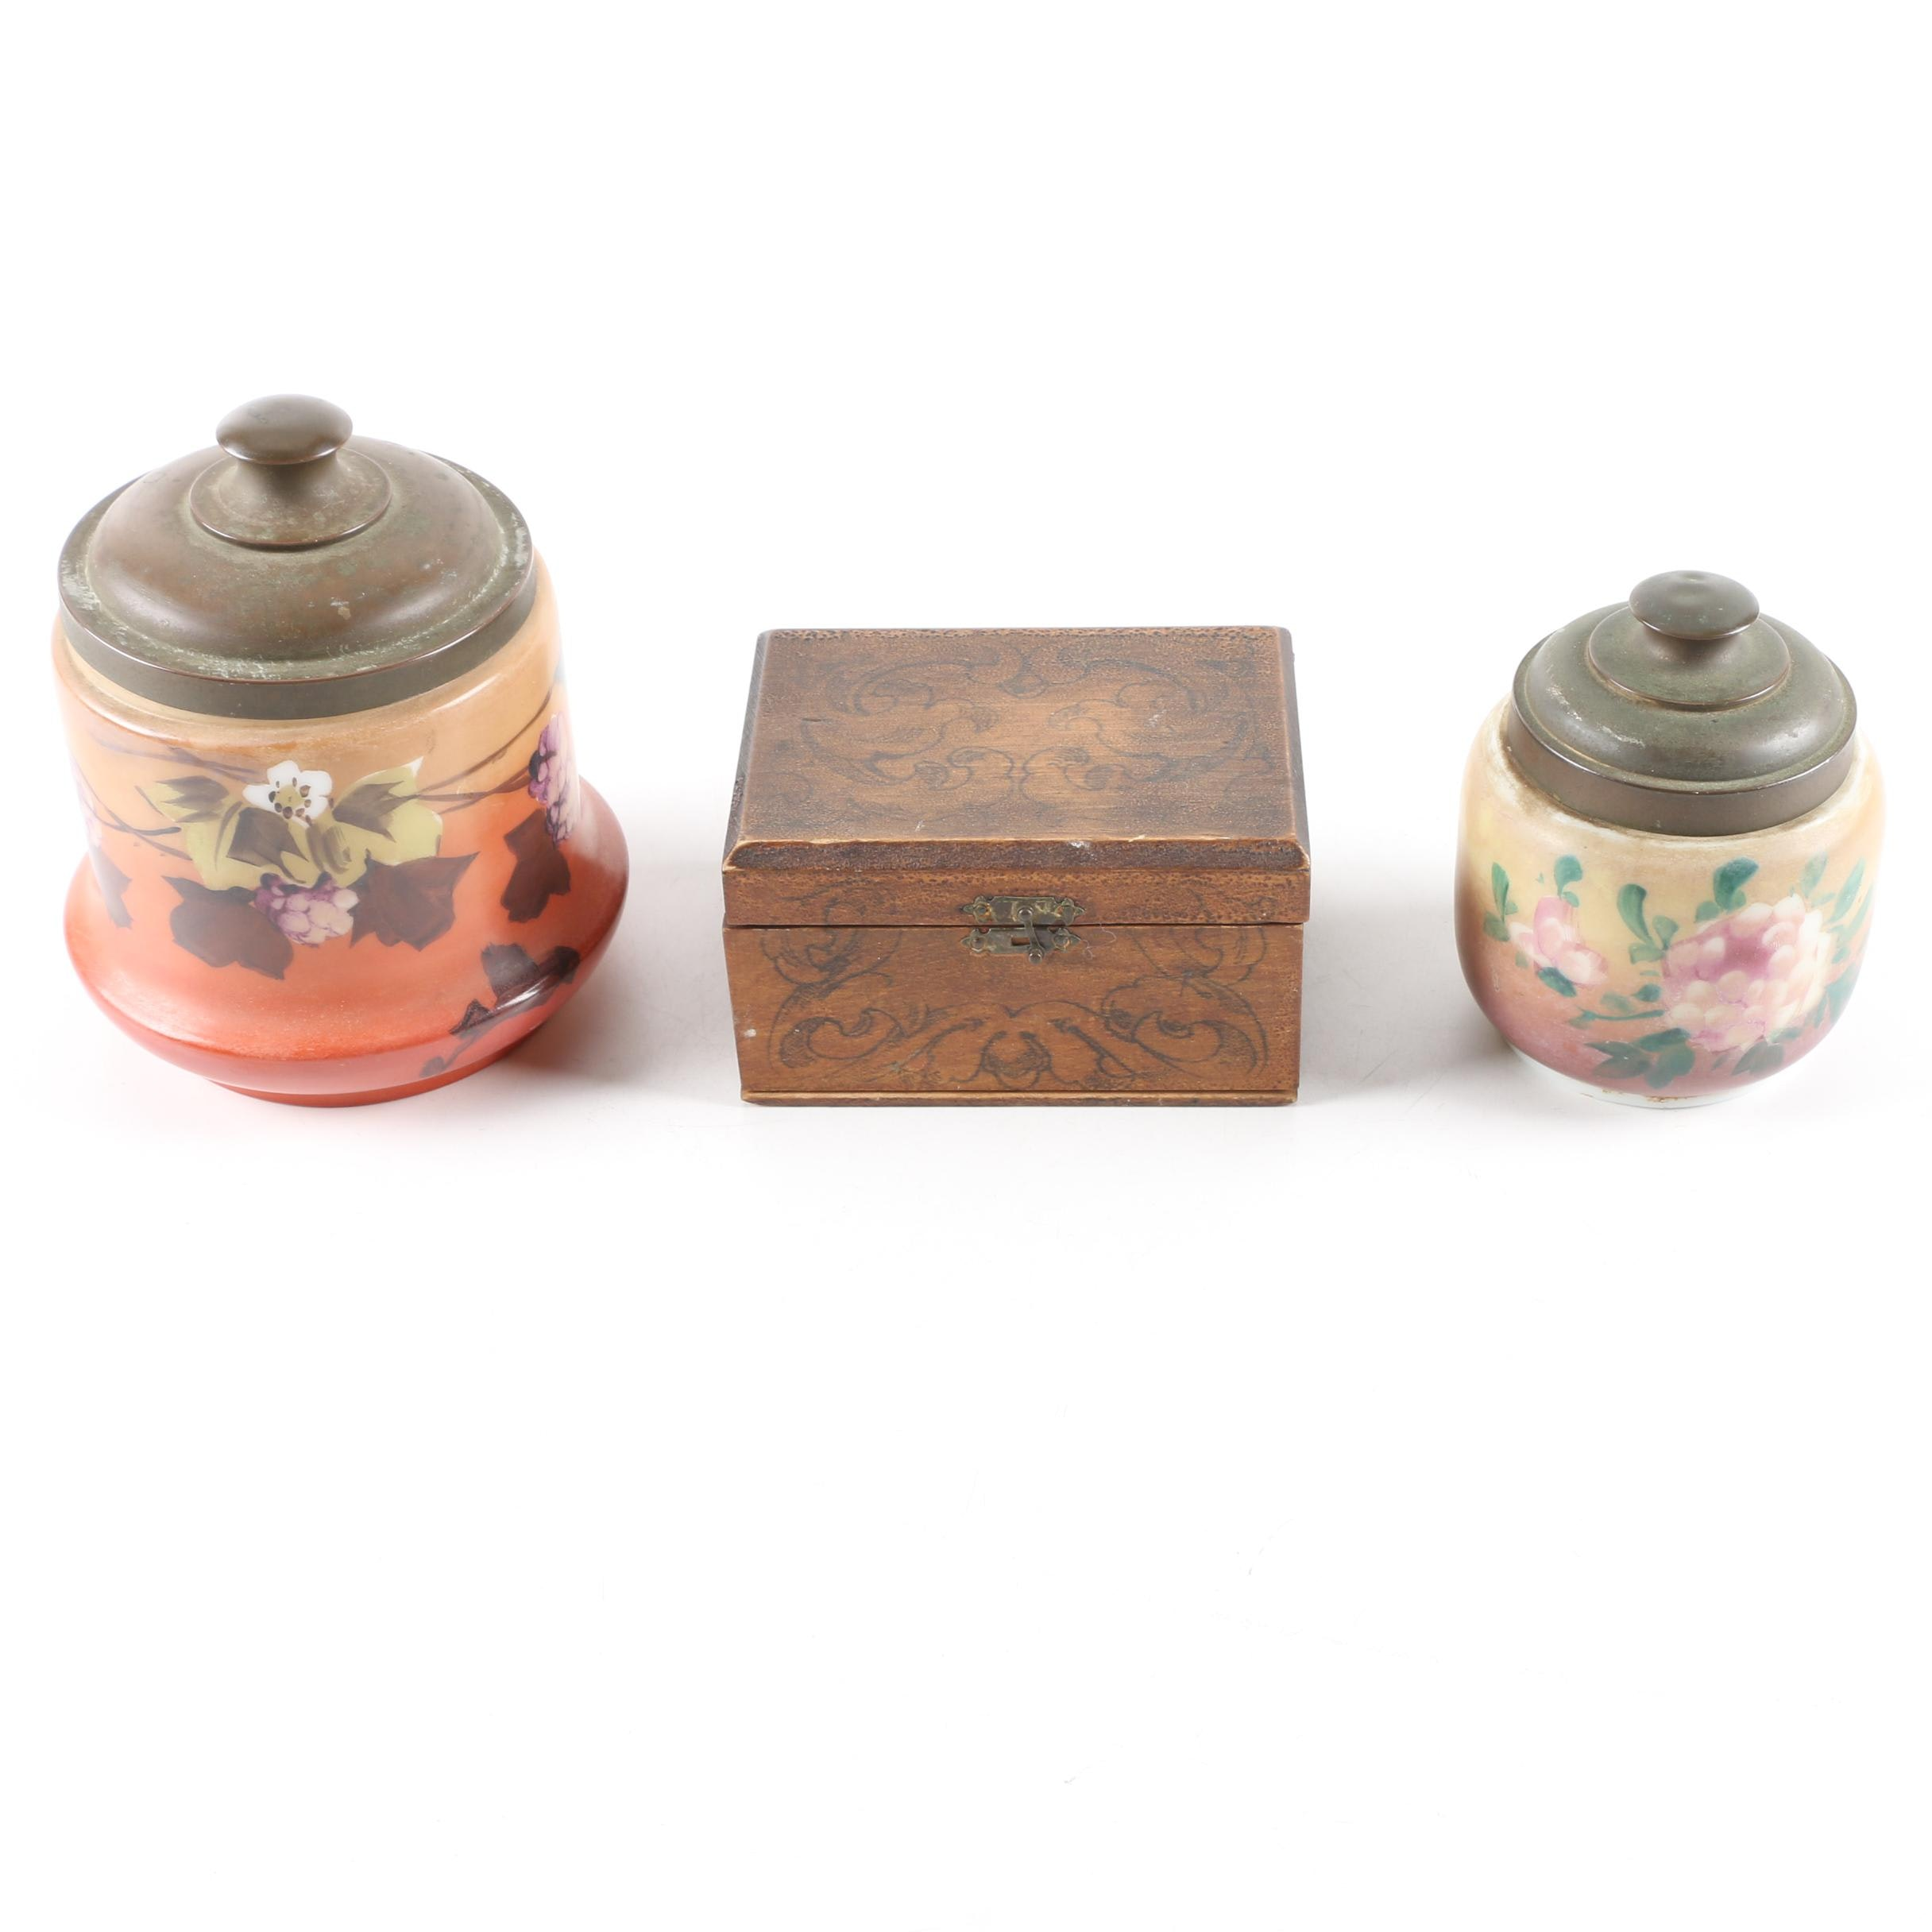 Vintage Painted Glass Jars and Decorative Wood Box